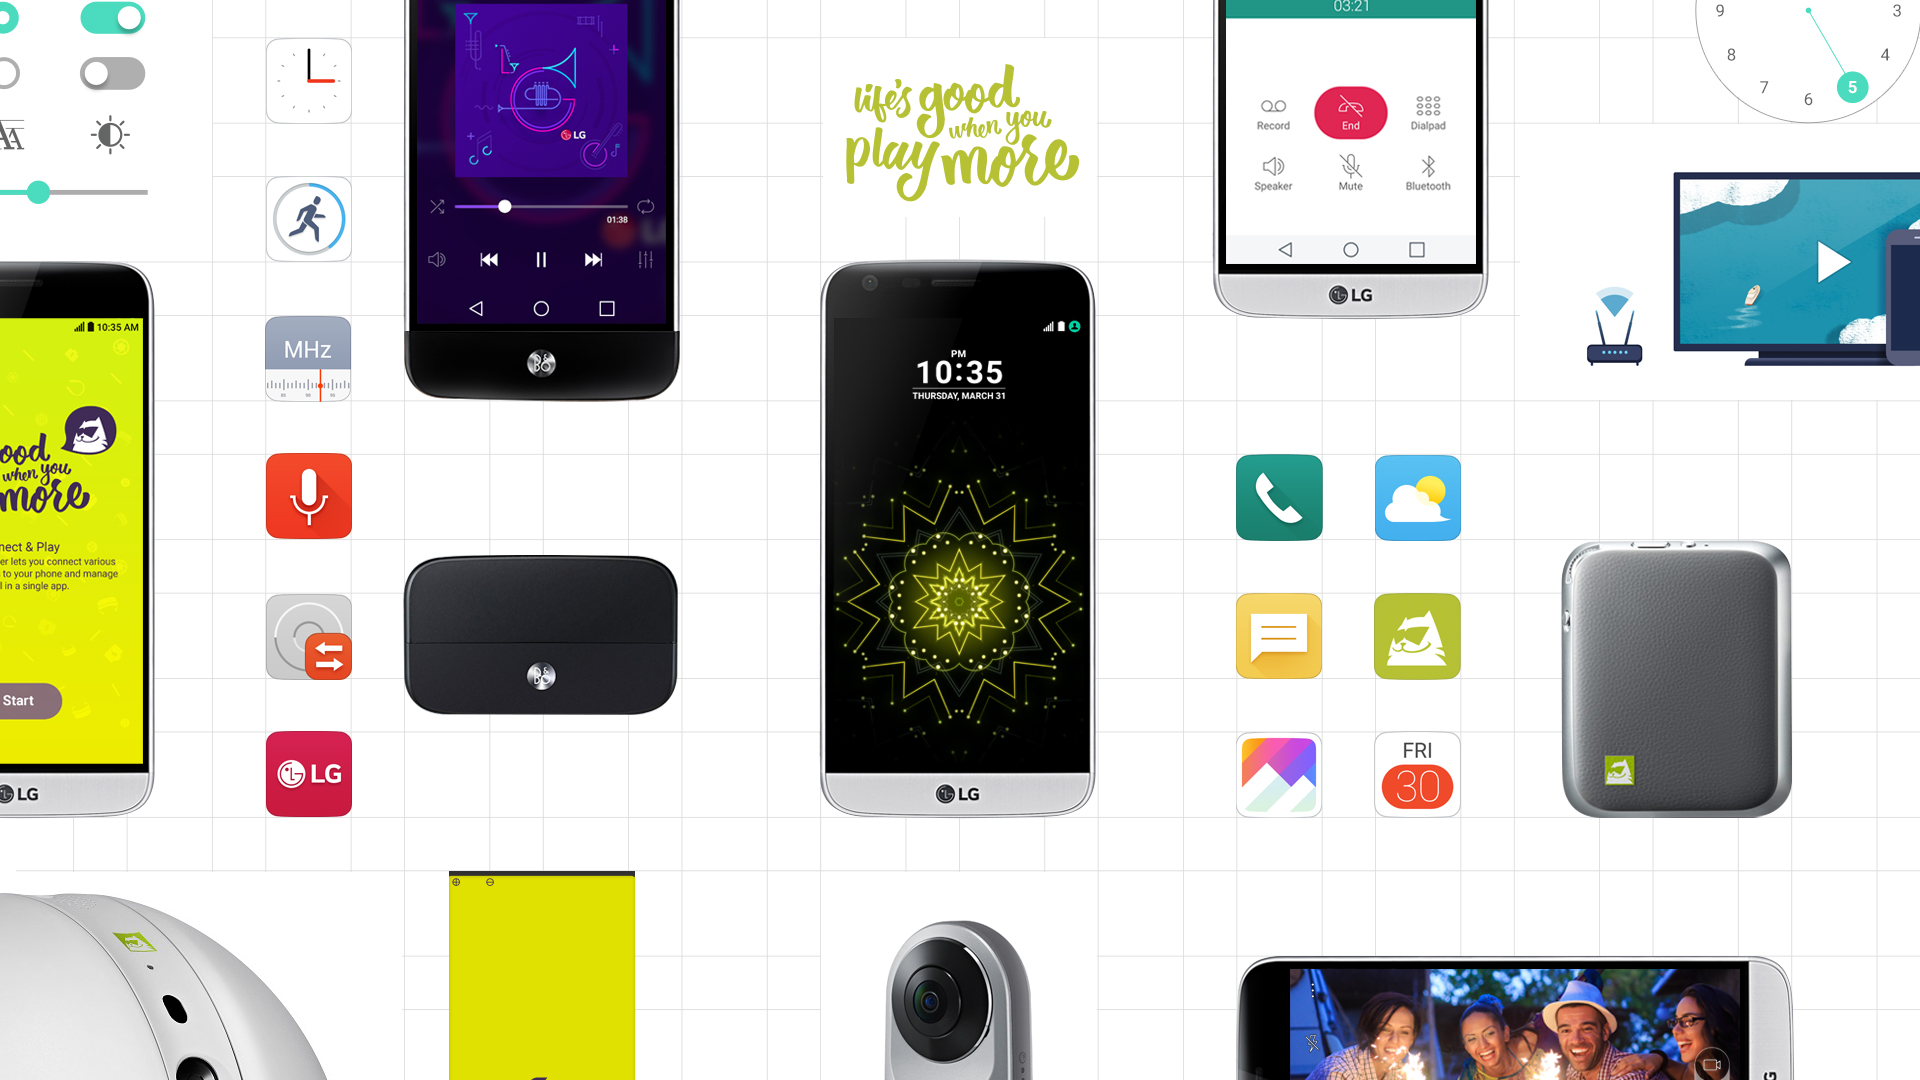 LG Introduces More Playful and Innovative User Interface 'UX 5.0' for G5 Smartphone